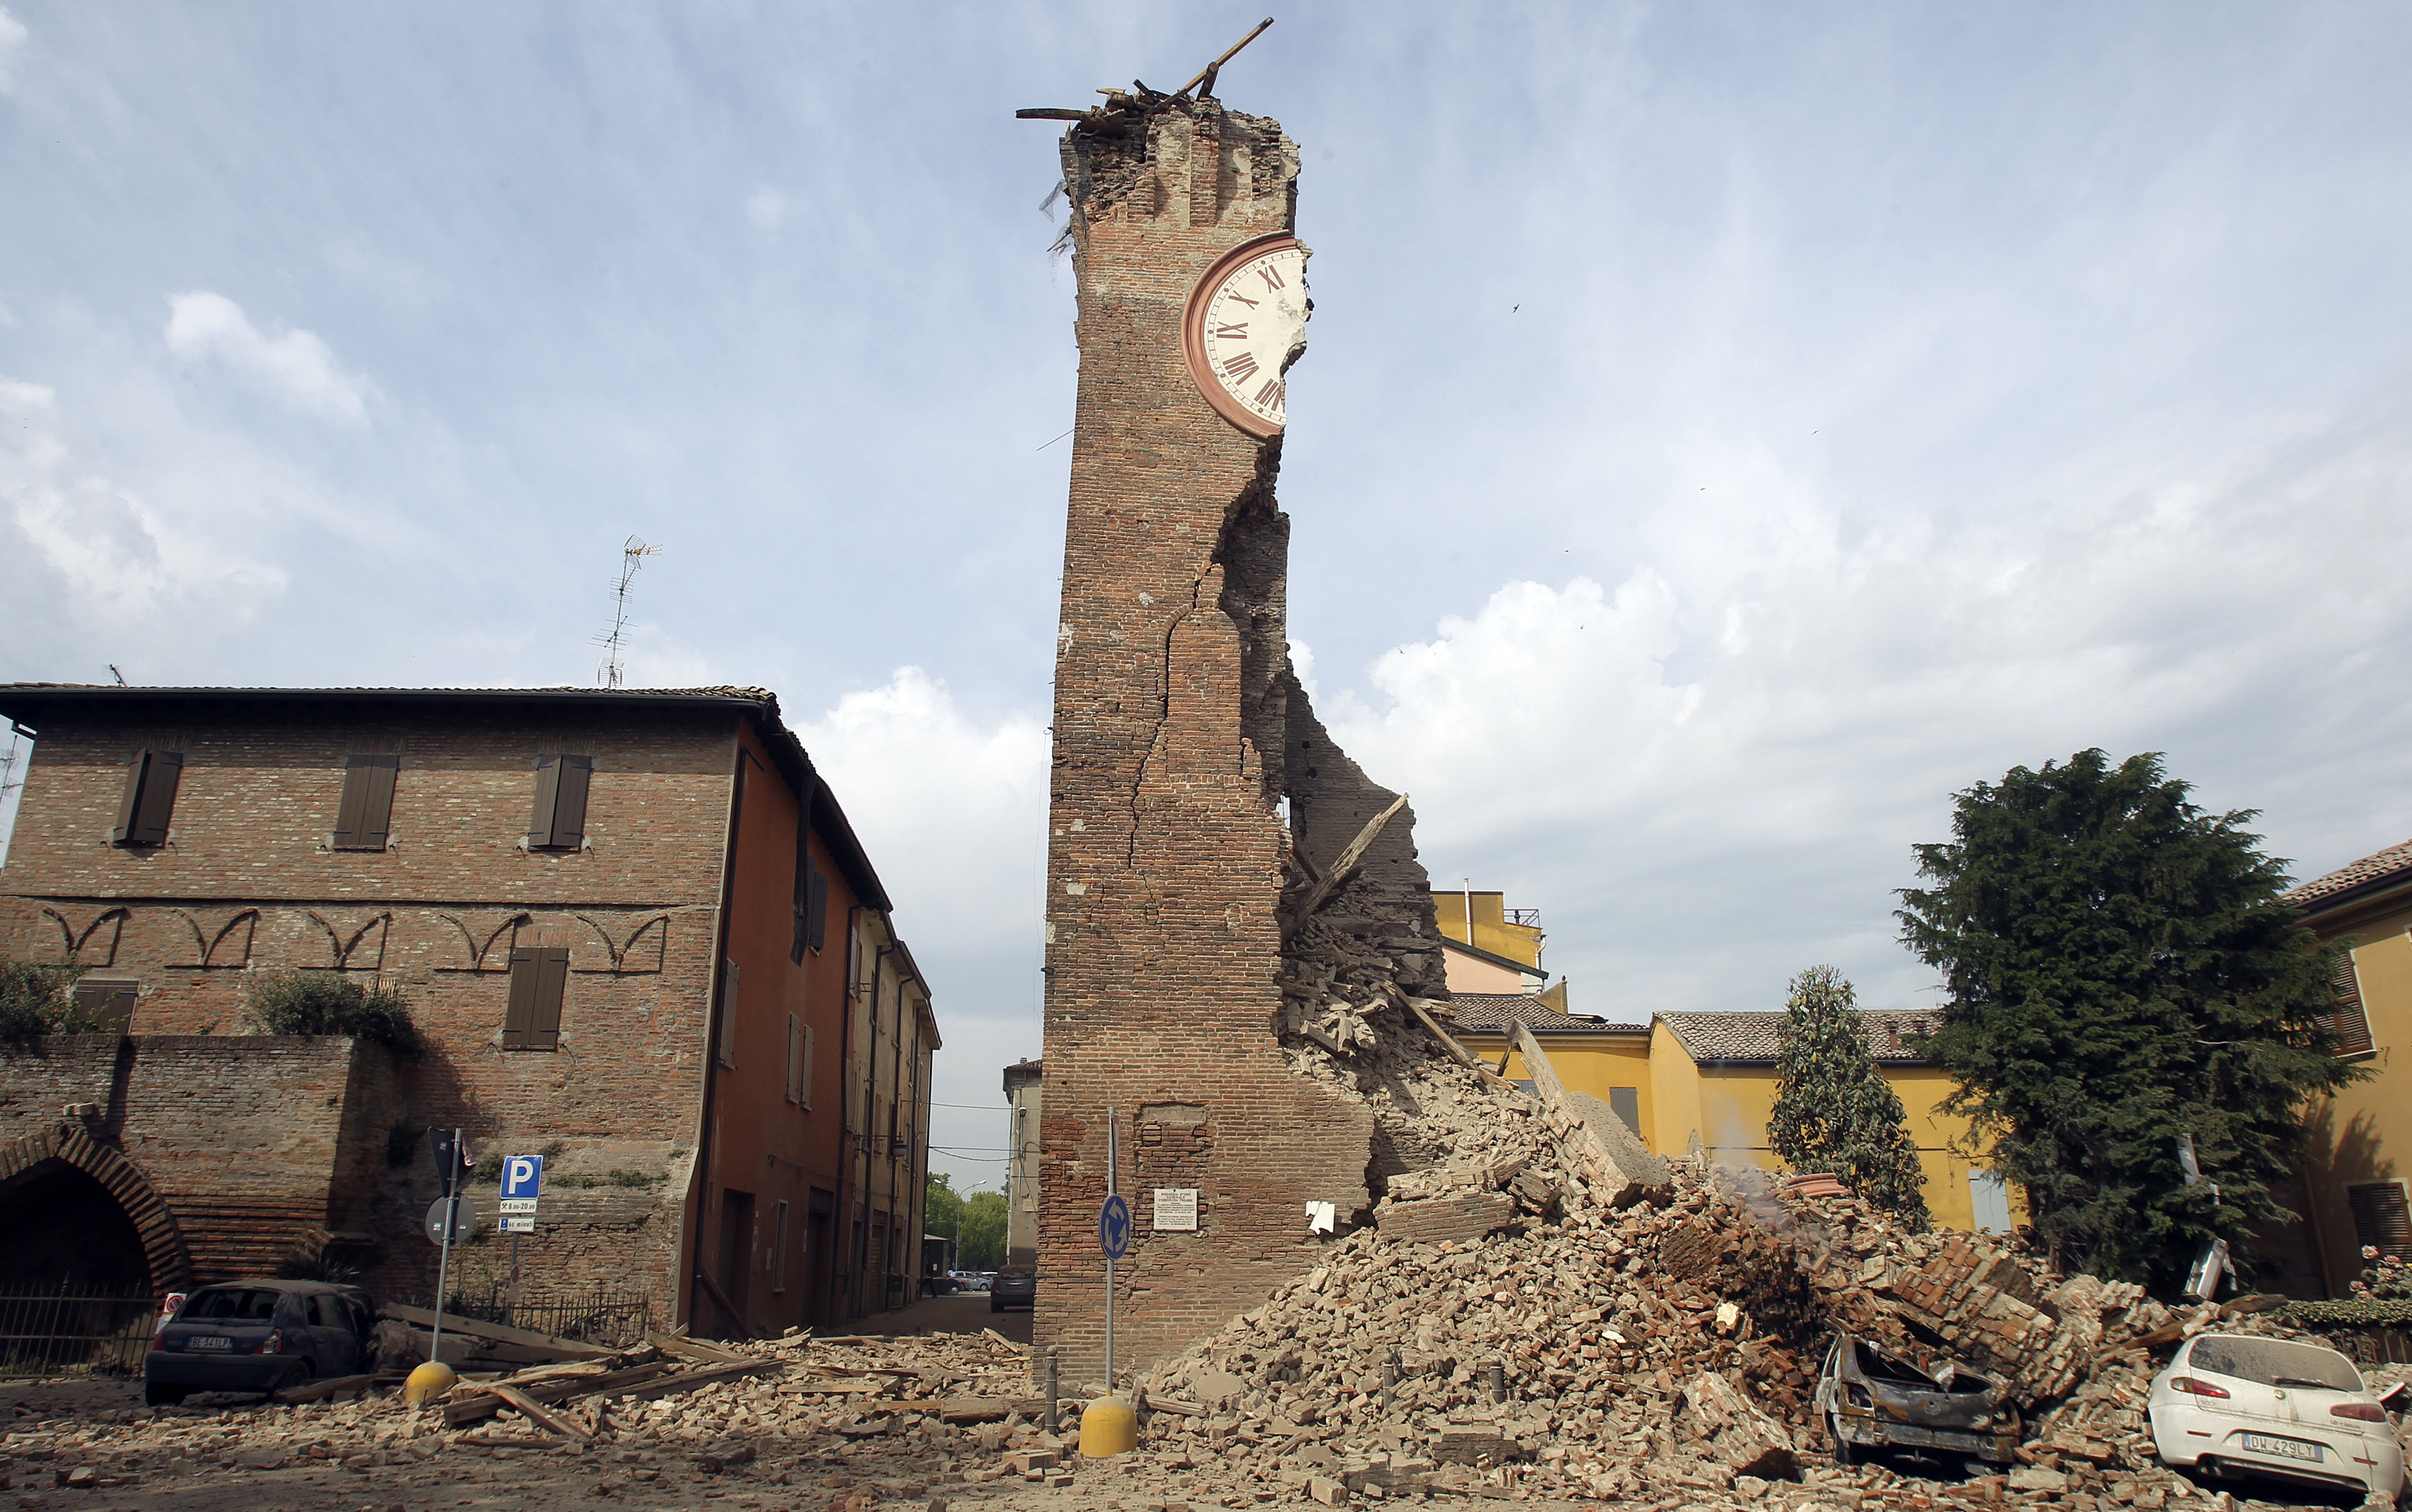 The old tower is seen collapsed after an earthquake in Finale Emilia May 20, 2012. A strong earthquake rocked a large swathe of northern Italy early on Sunday, killing at least three people and causing serious damage to the area's cultural heritage. The epicentre of the 6.0 magnitude quake, the strongest to hit Italy in three years, was in the plains near Modena in the Emilia-Romagna region of the Po River Valley. REUTERS/Giorgio Benvenuti  ( ITALY - Tags: DISASTER ENVIRONMENT TPX IMAGES OF THE DAY) - GM1E85K1A5S01